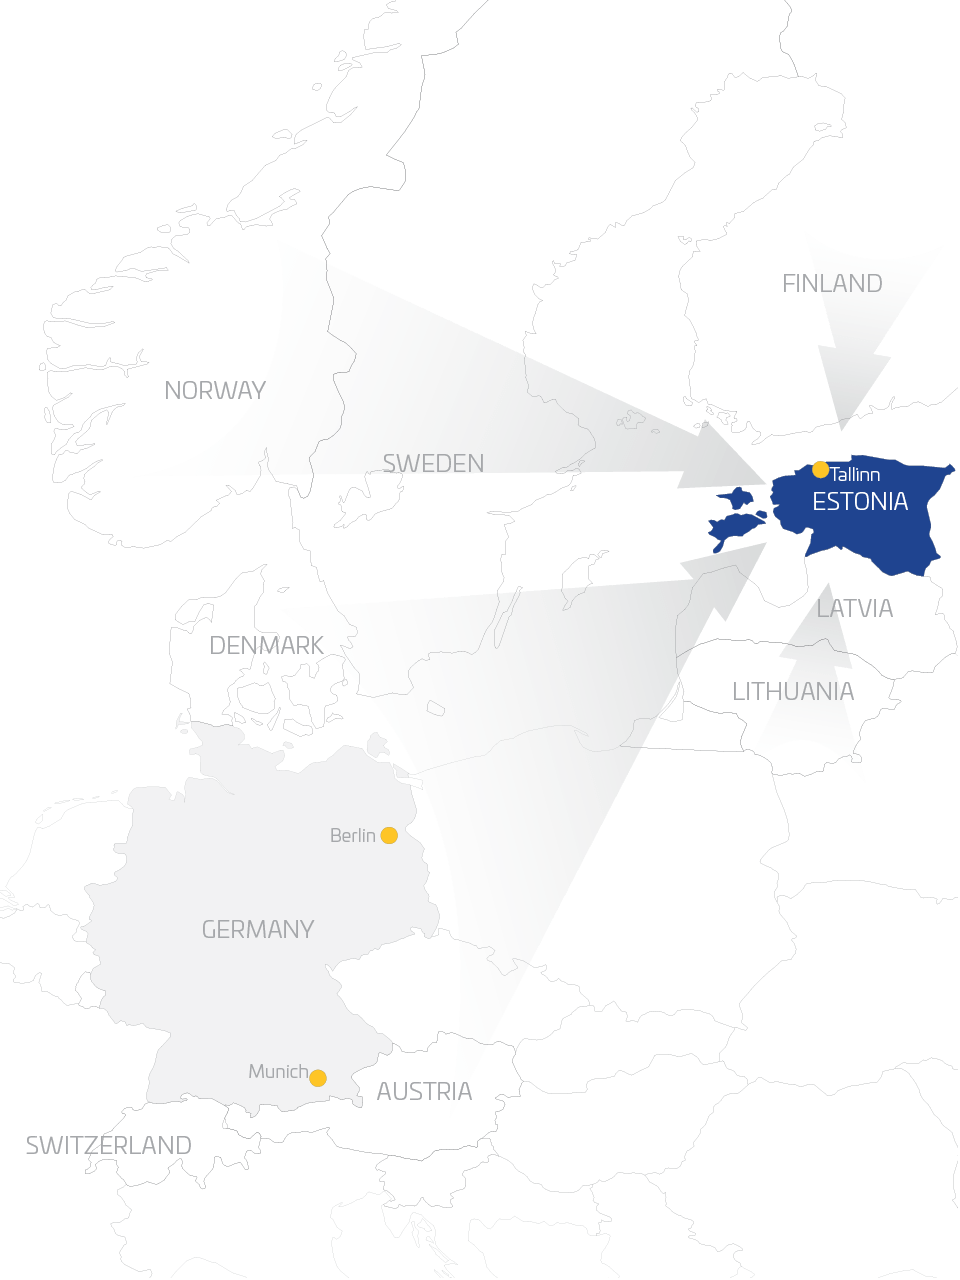 Estonia is the nearshore innovation hub